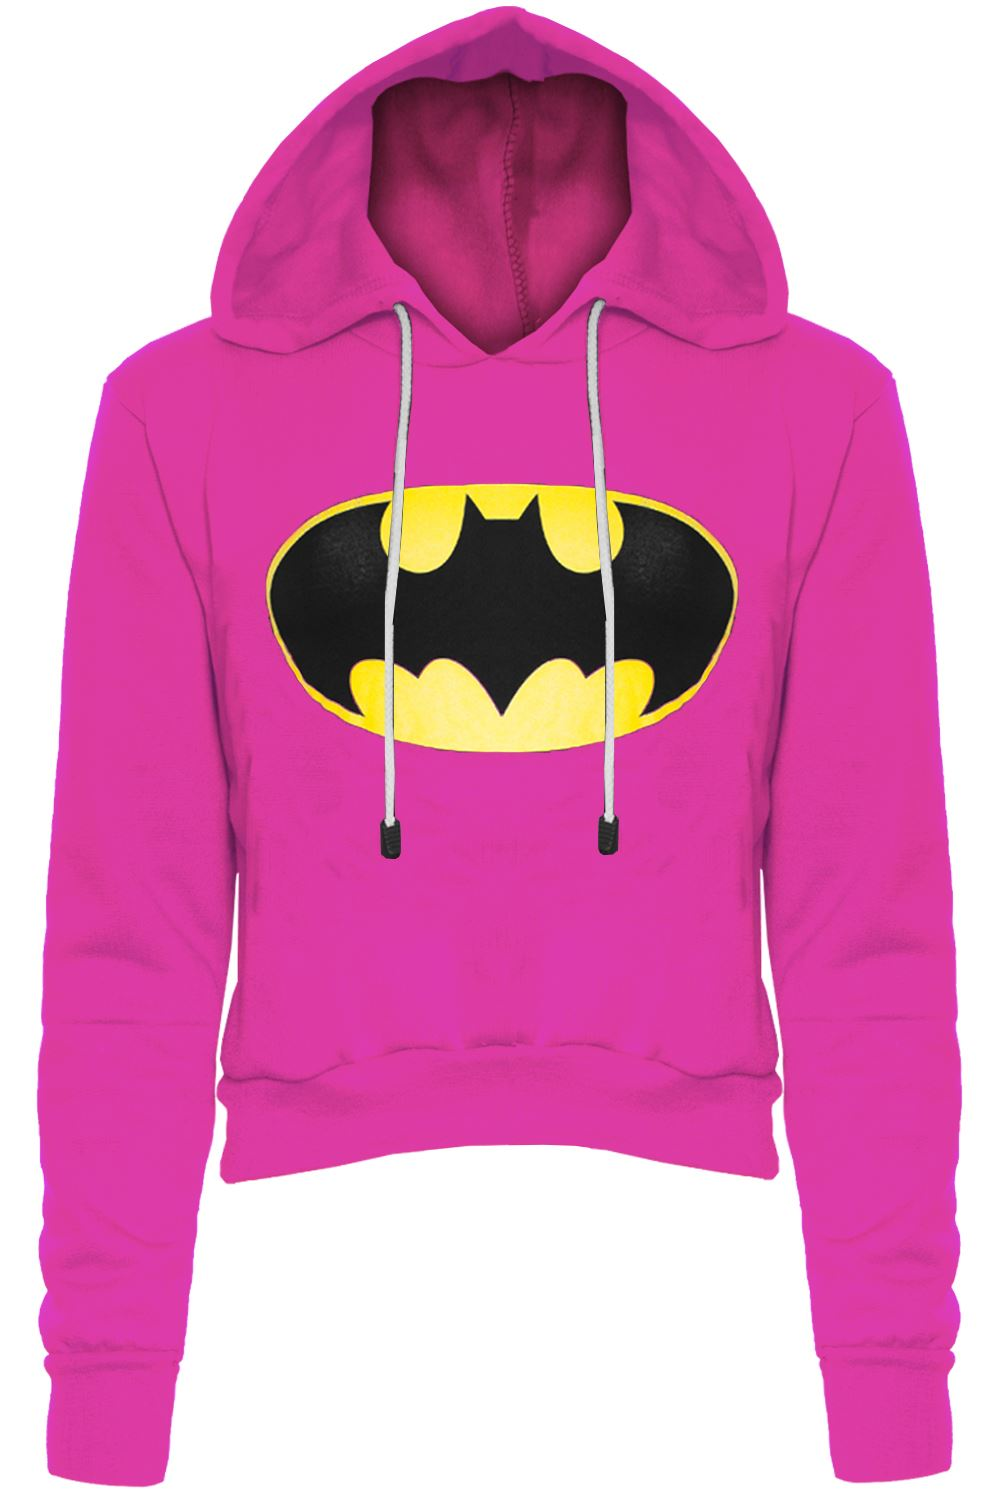 damen batman strickpullover pulli damen kurzes top mit langen rmeln fleece ebay. Black Bedroom Furniture Sets. Home Design Ideas